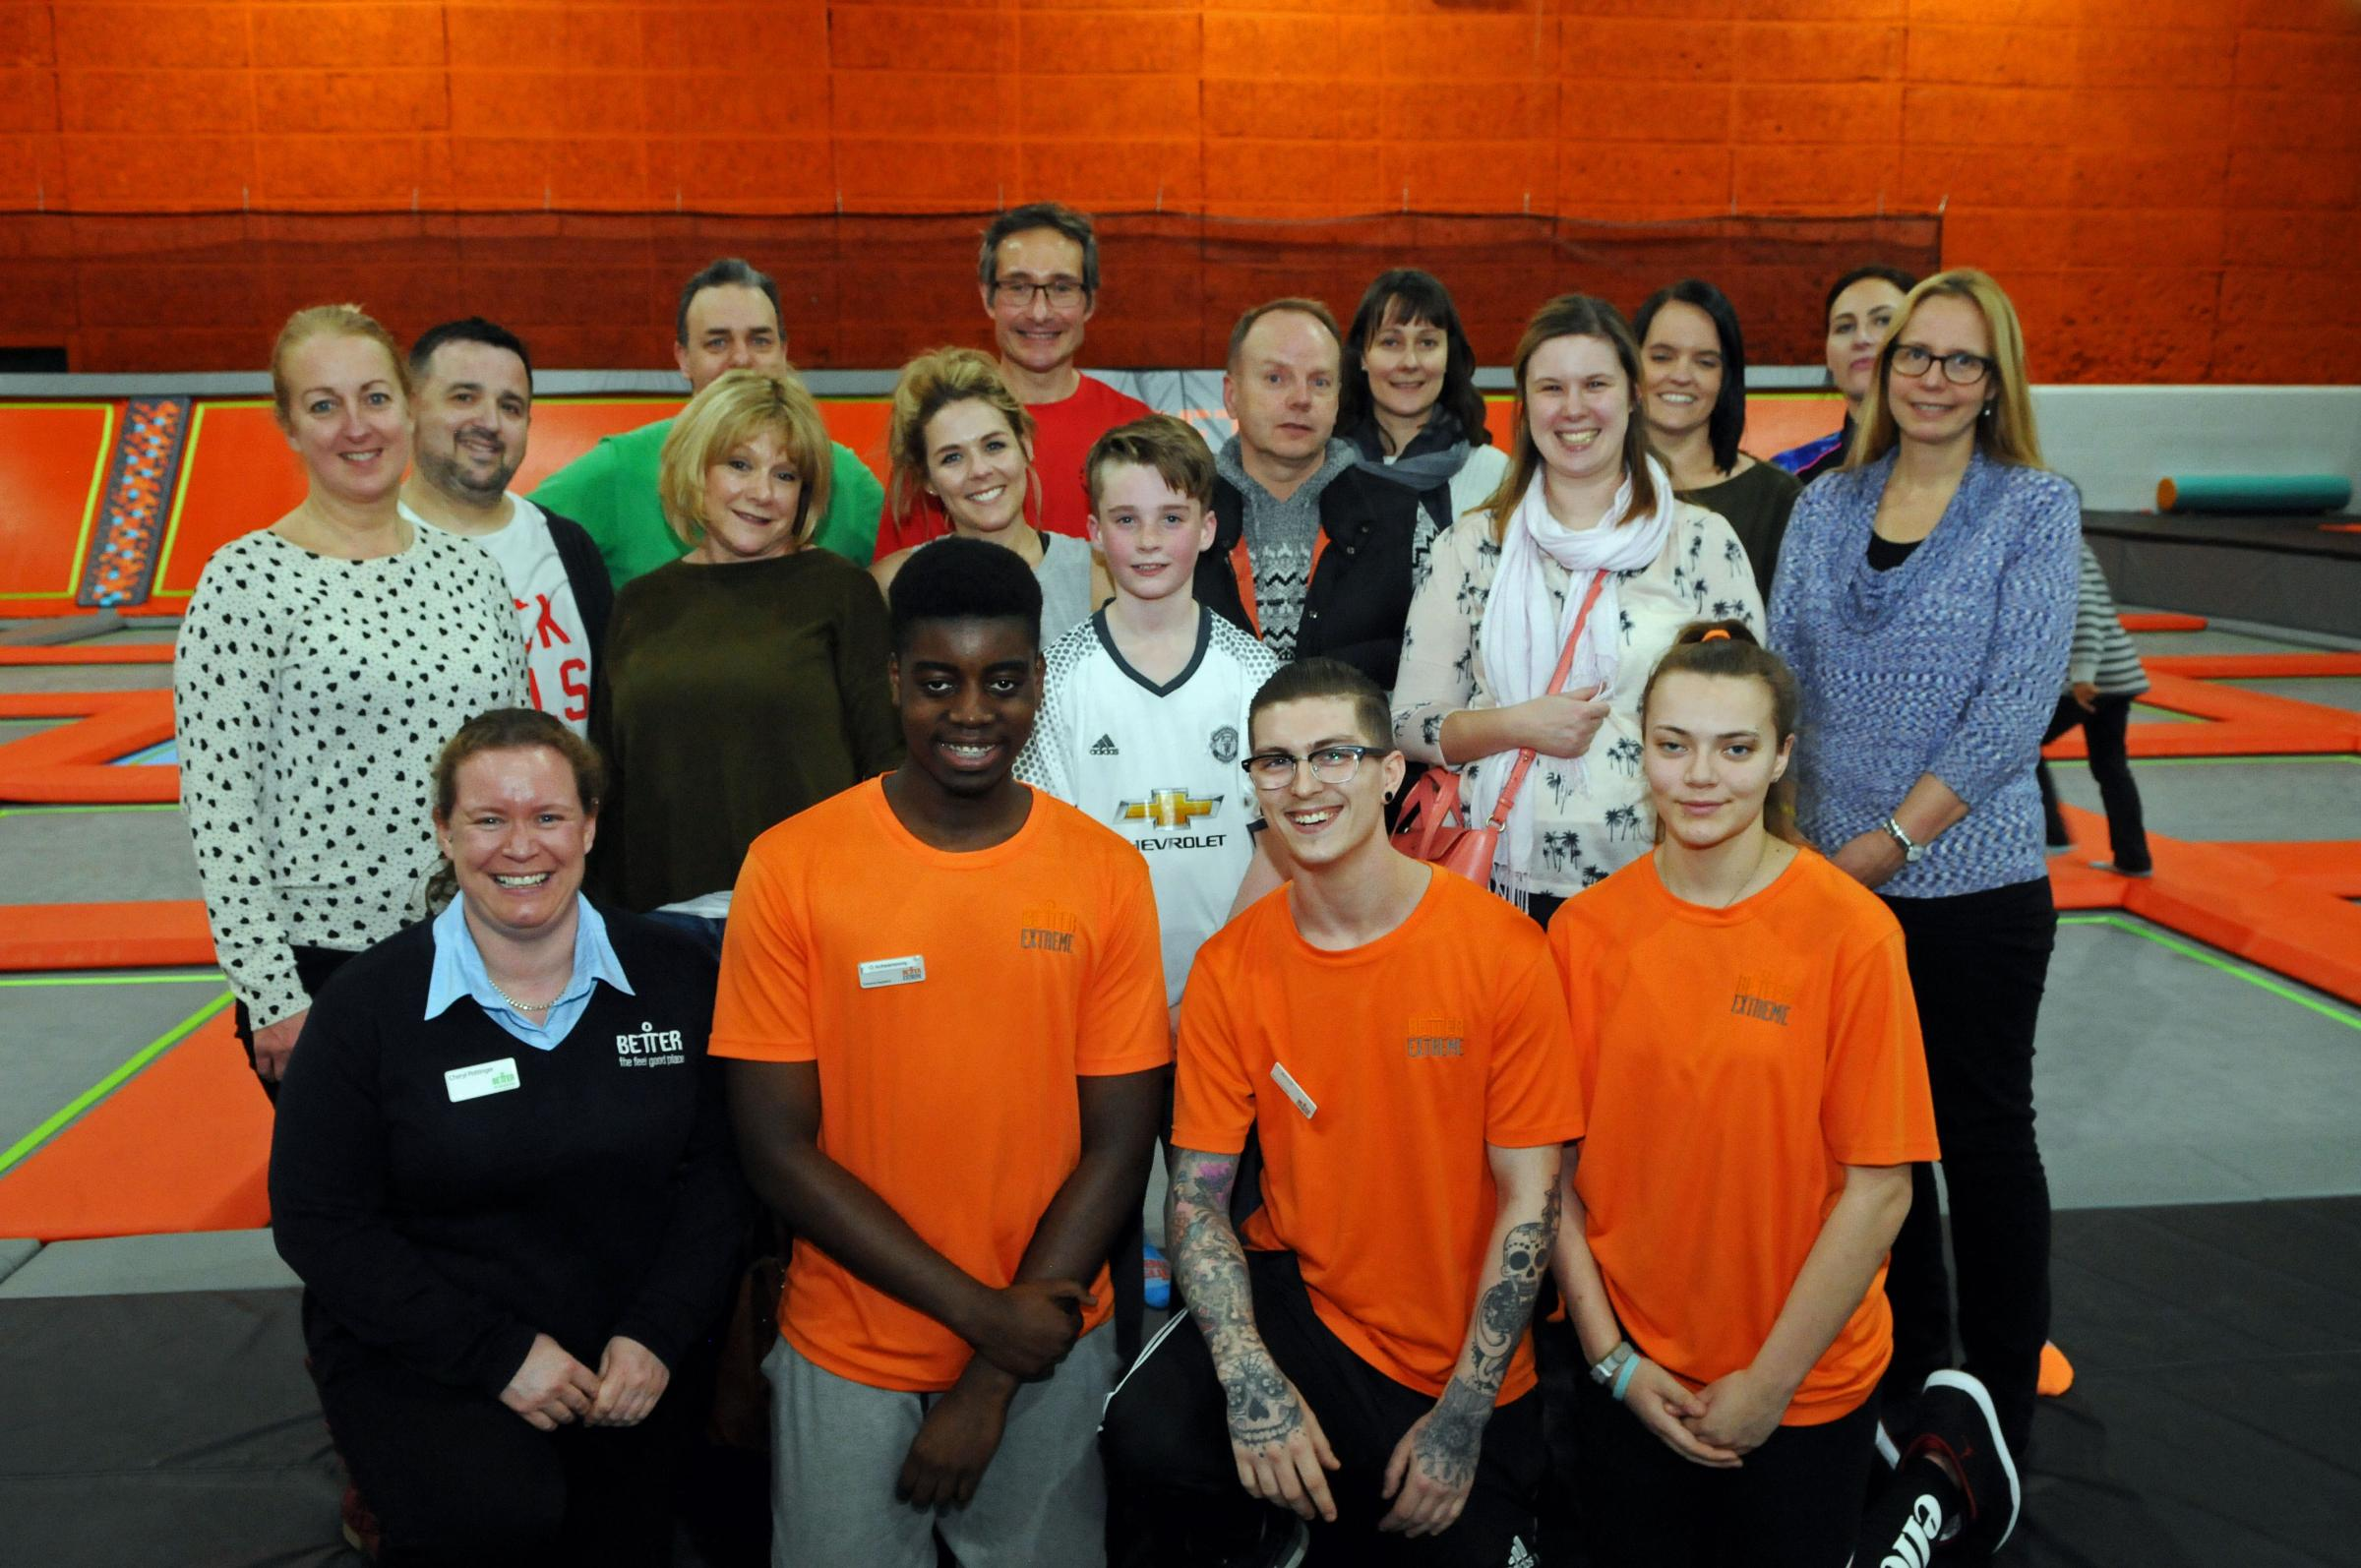 Staff and young people from SMASH Youth Project at Better's Link Centre, Swindon.